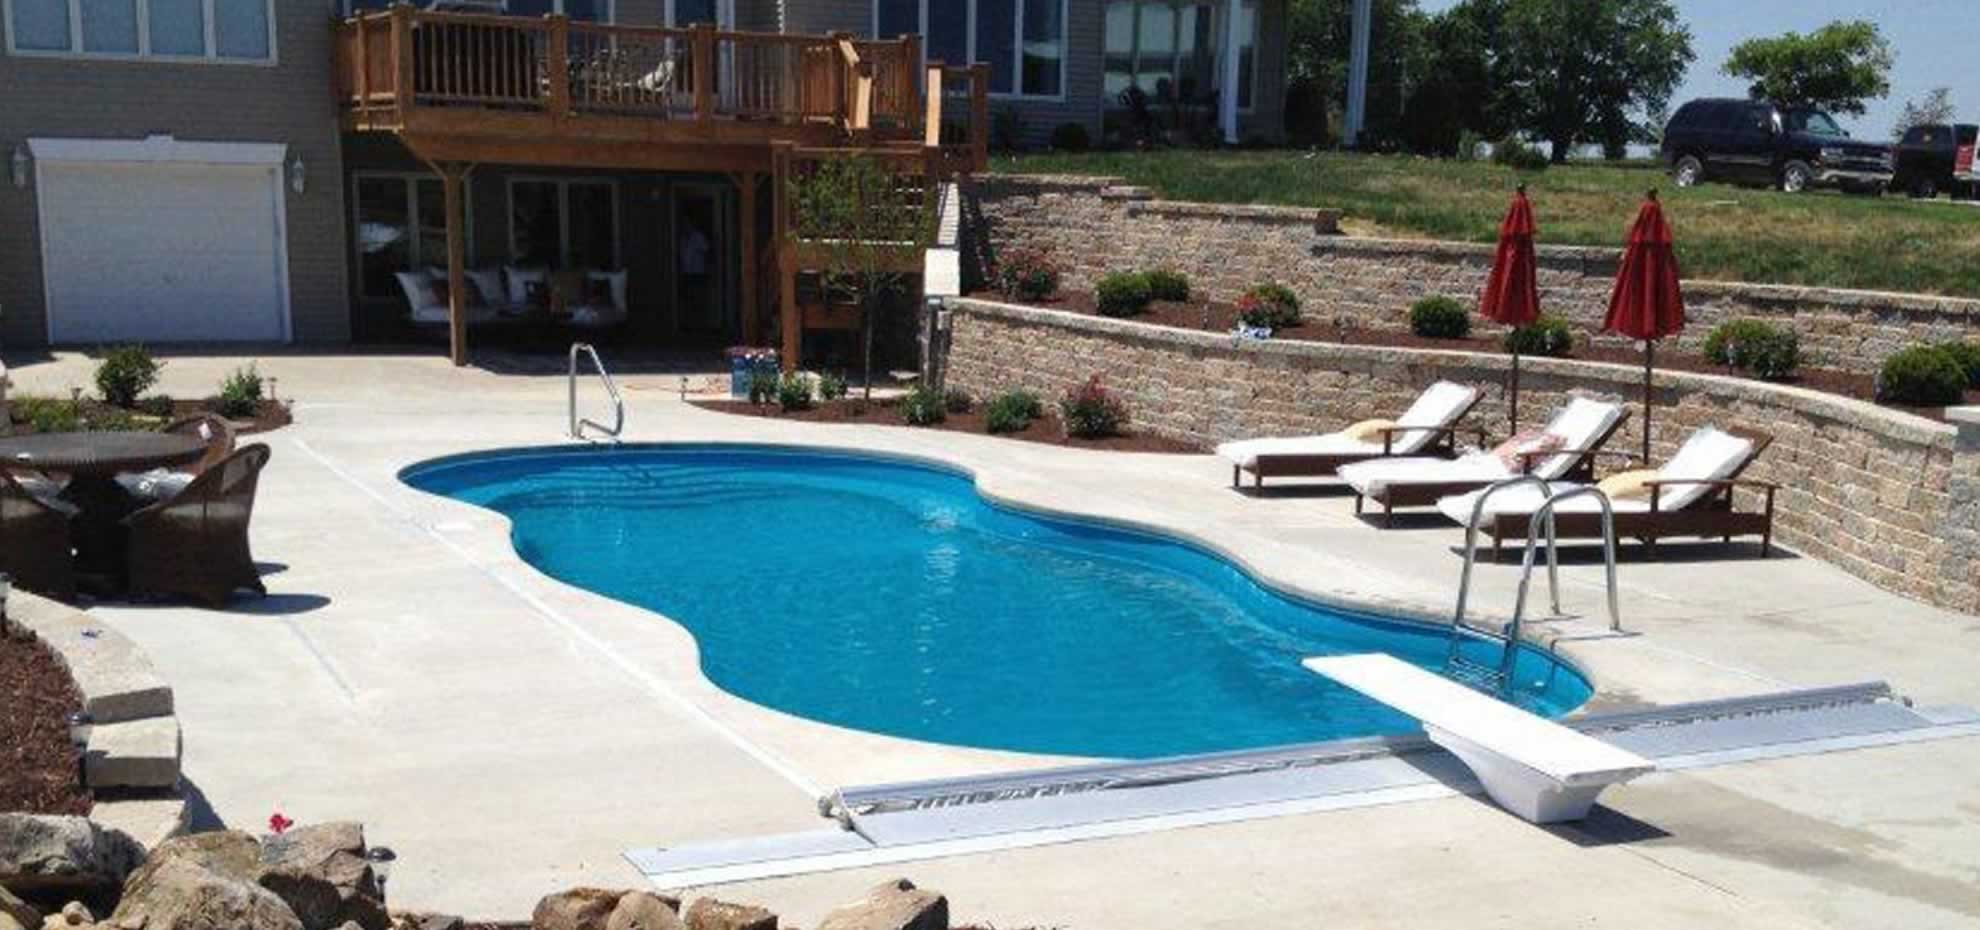 Mediterranean fibreglass pool design with coping by Leisure Pools